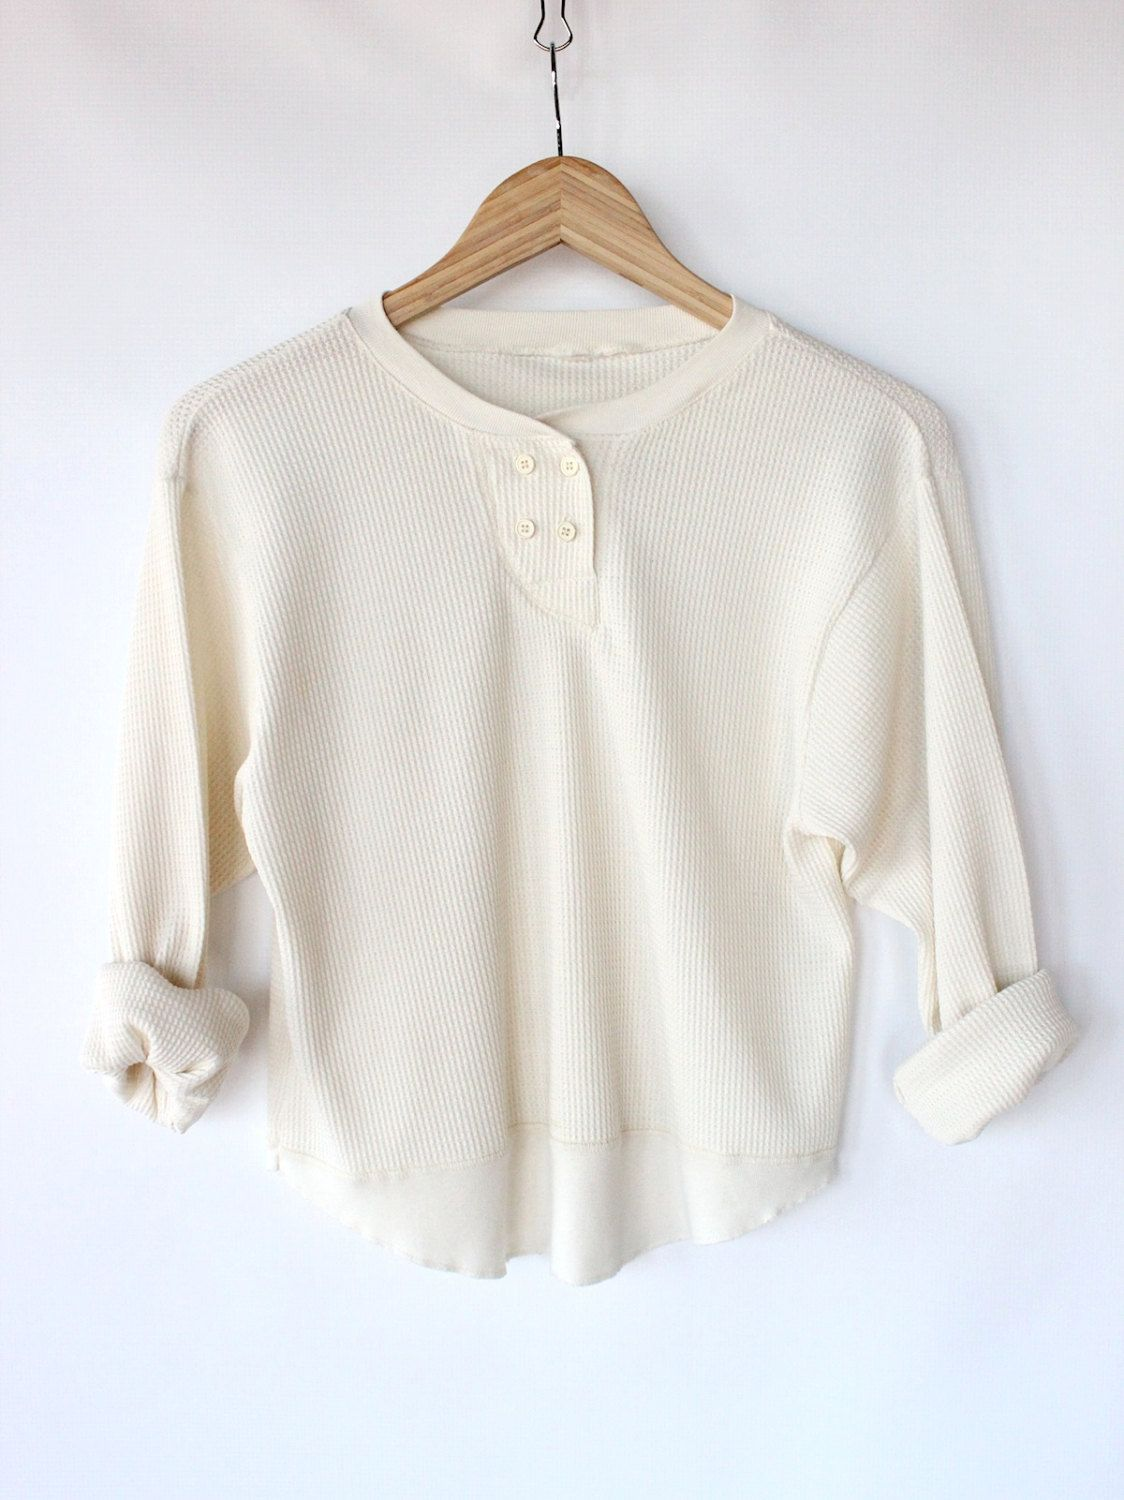 676168292e2e5 Vintage 70s White Henley Thermal Shirt // Womens Rustic Outdoors ...